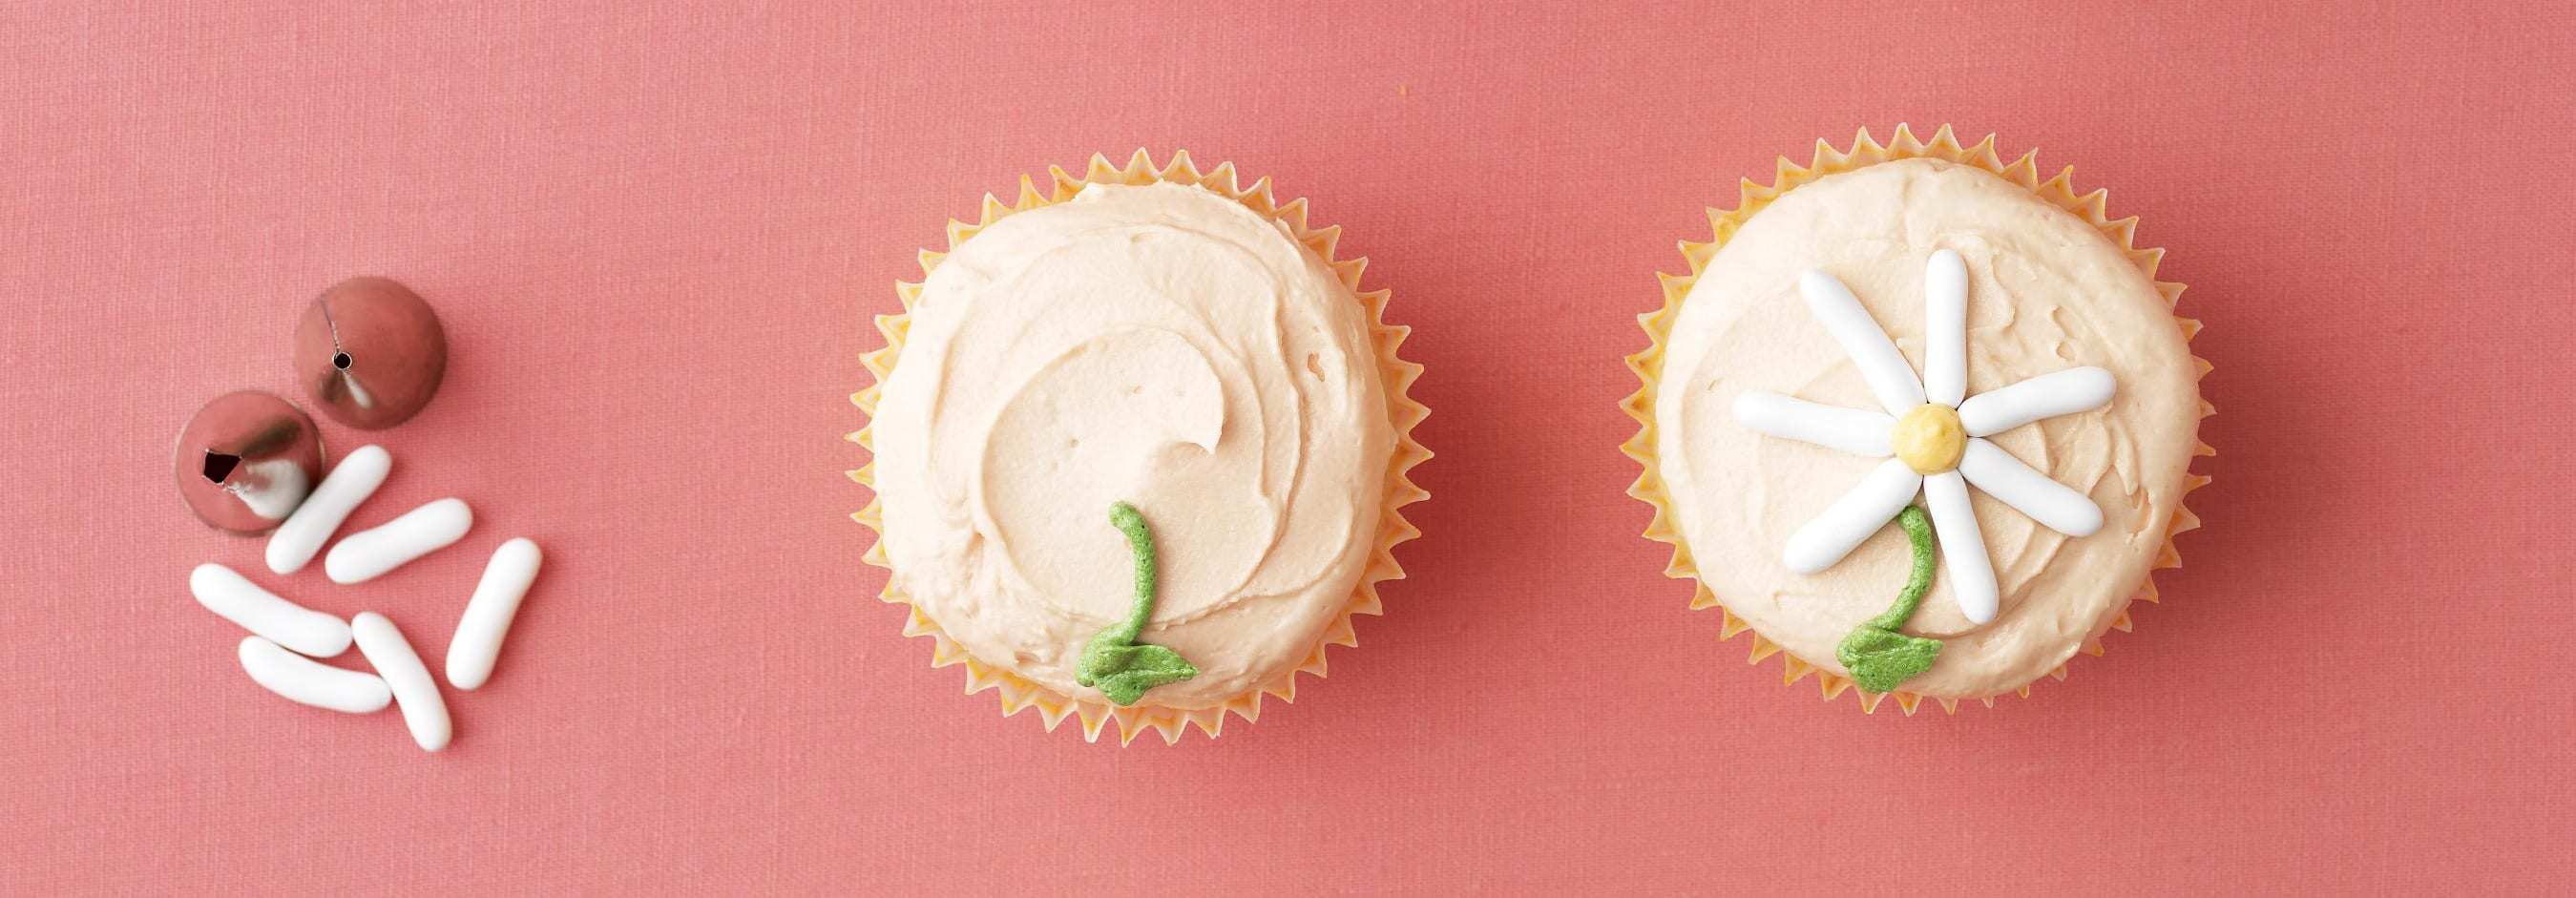 Daisy Cupcakes decorating ingredients and icing tips